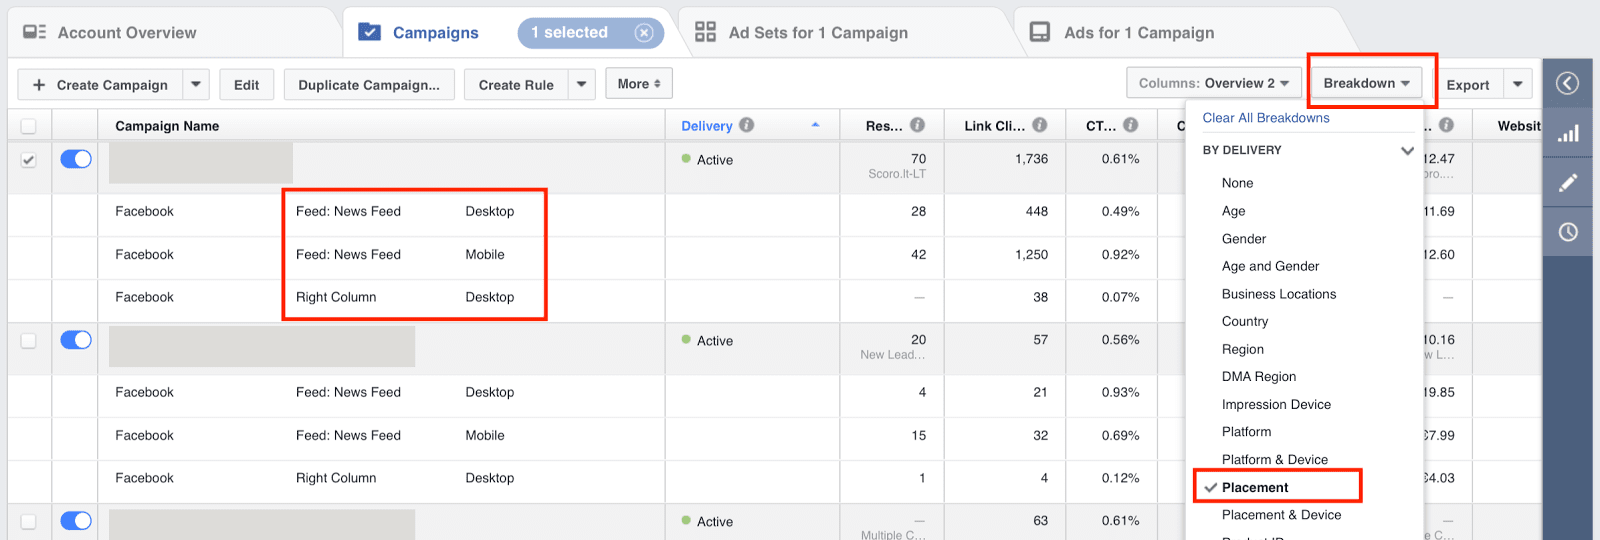 Campaign overview in Facebook Ads Manager featuring breakdowns by action